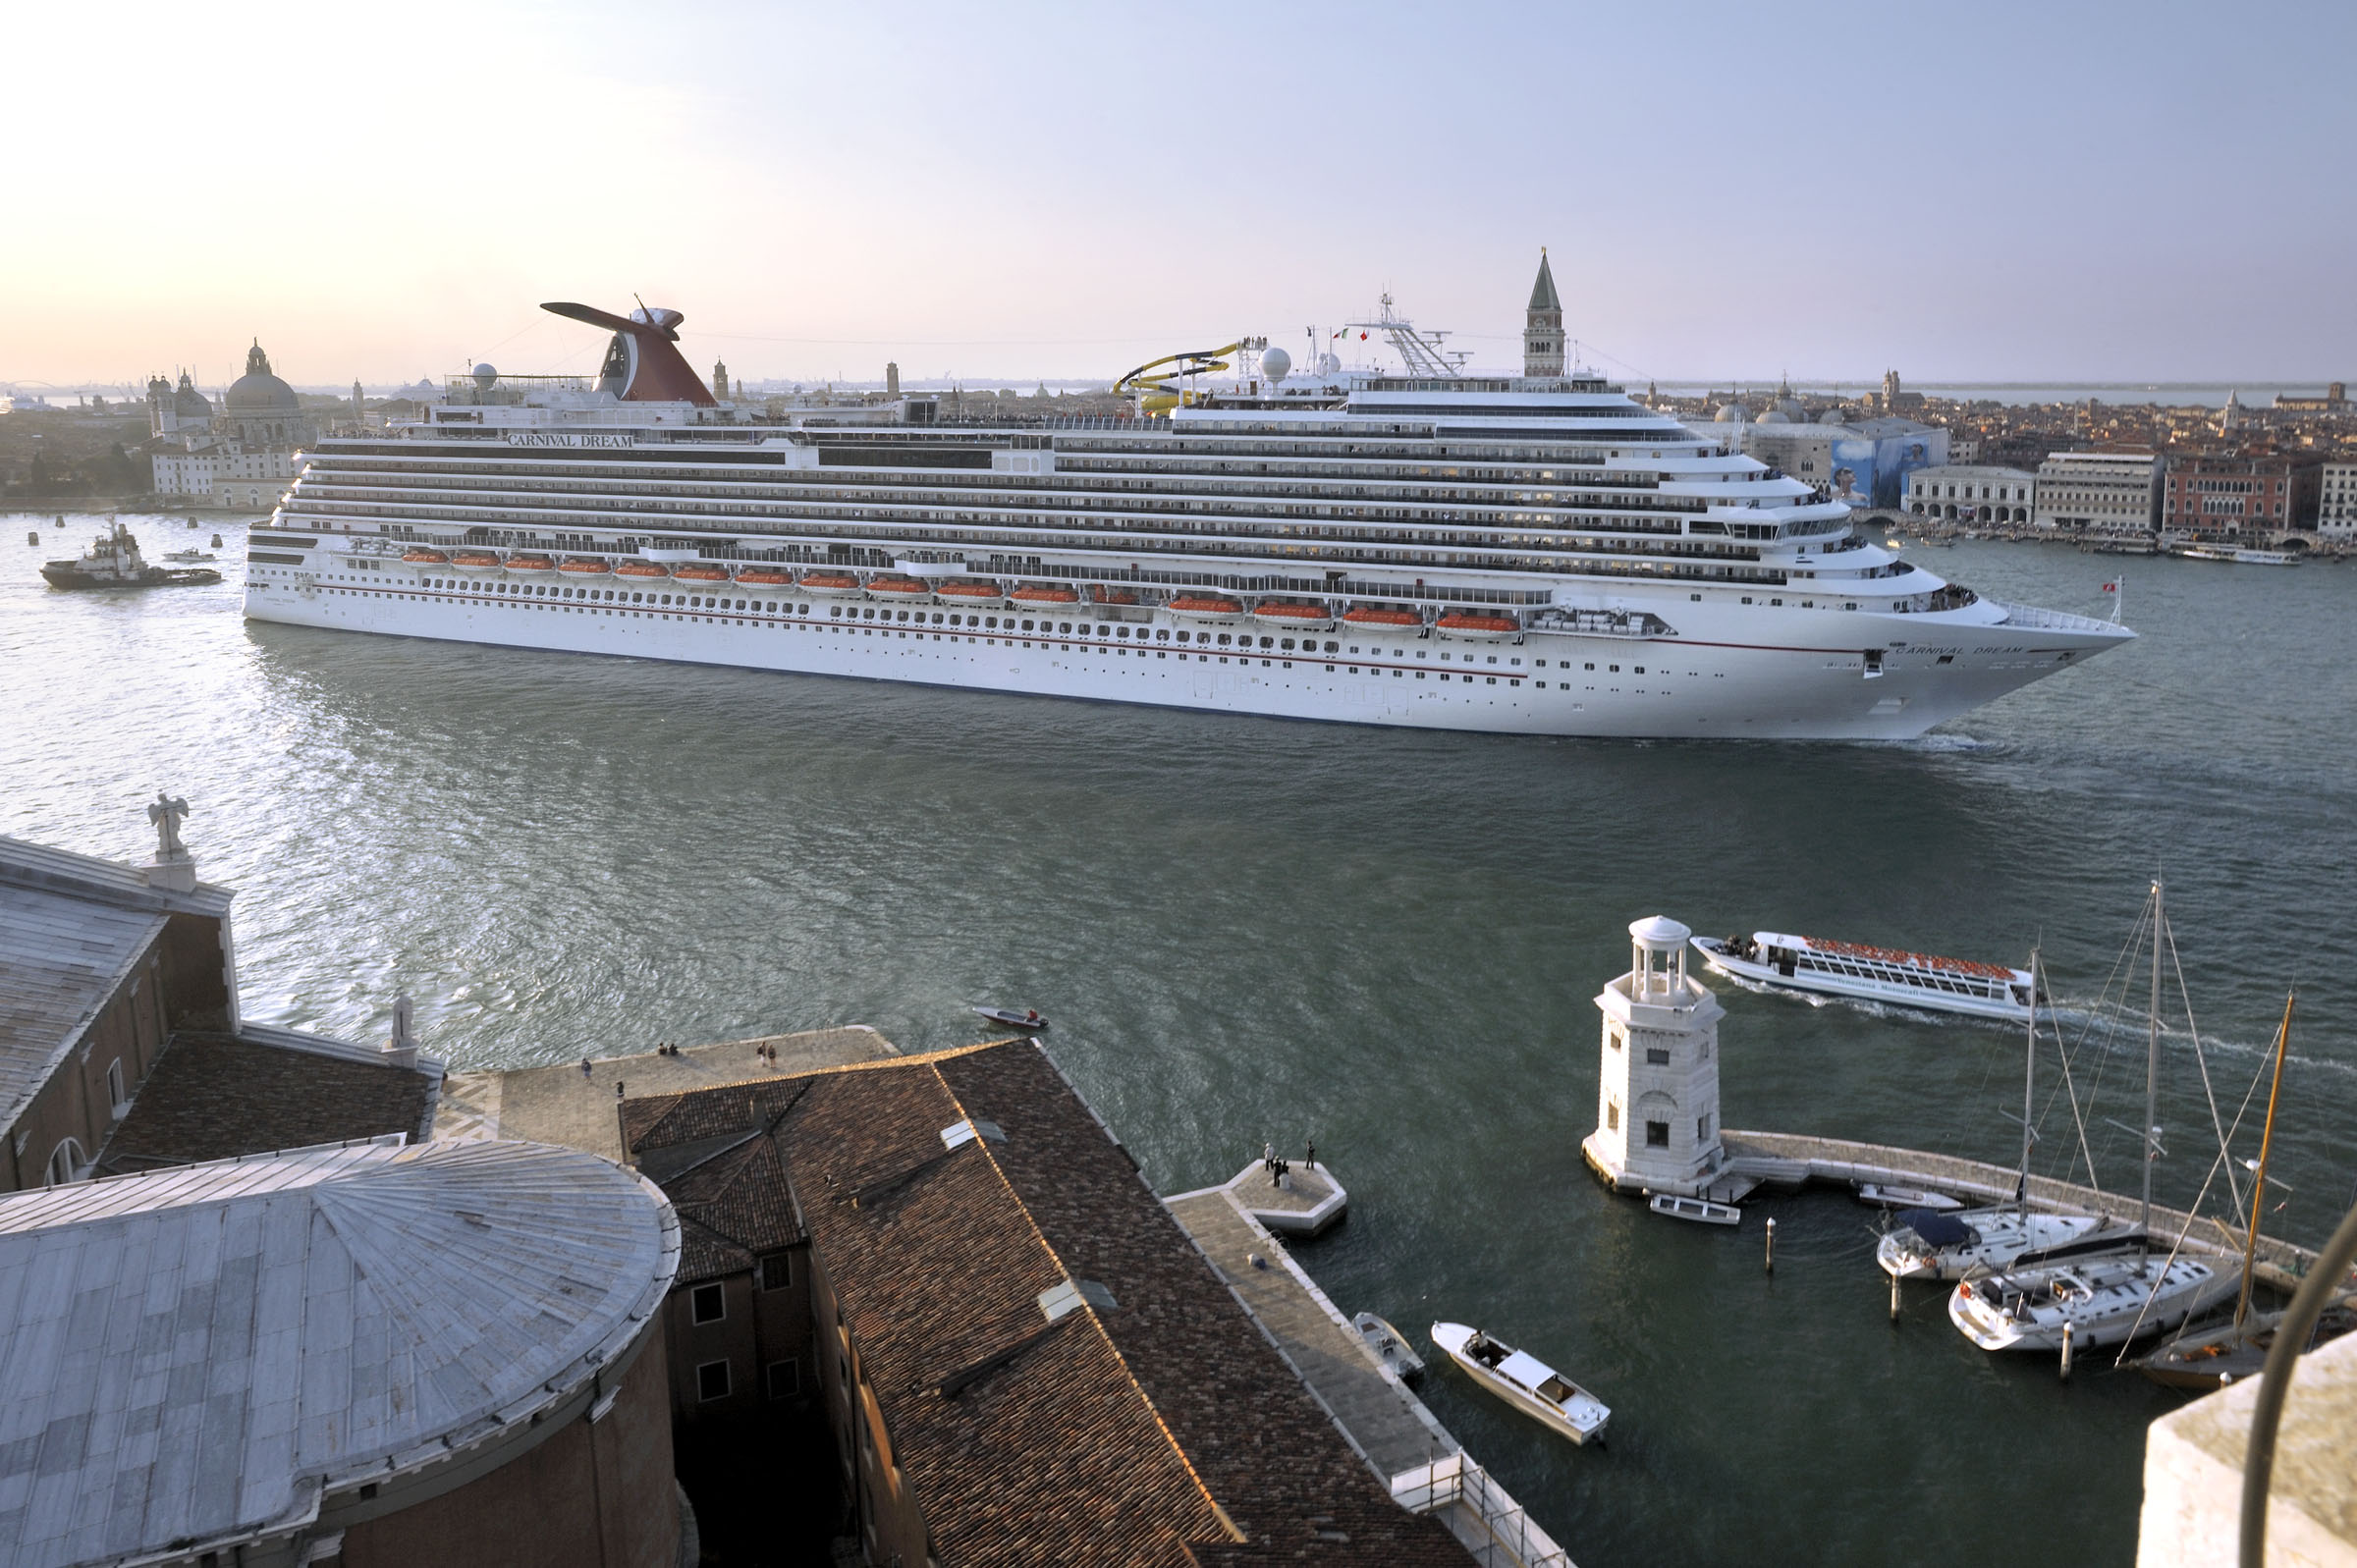 ship_dream_venice_092609_DSC3501